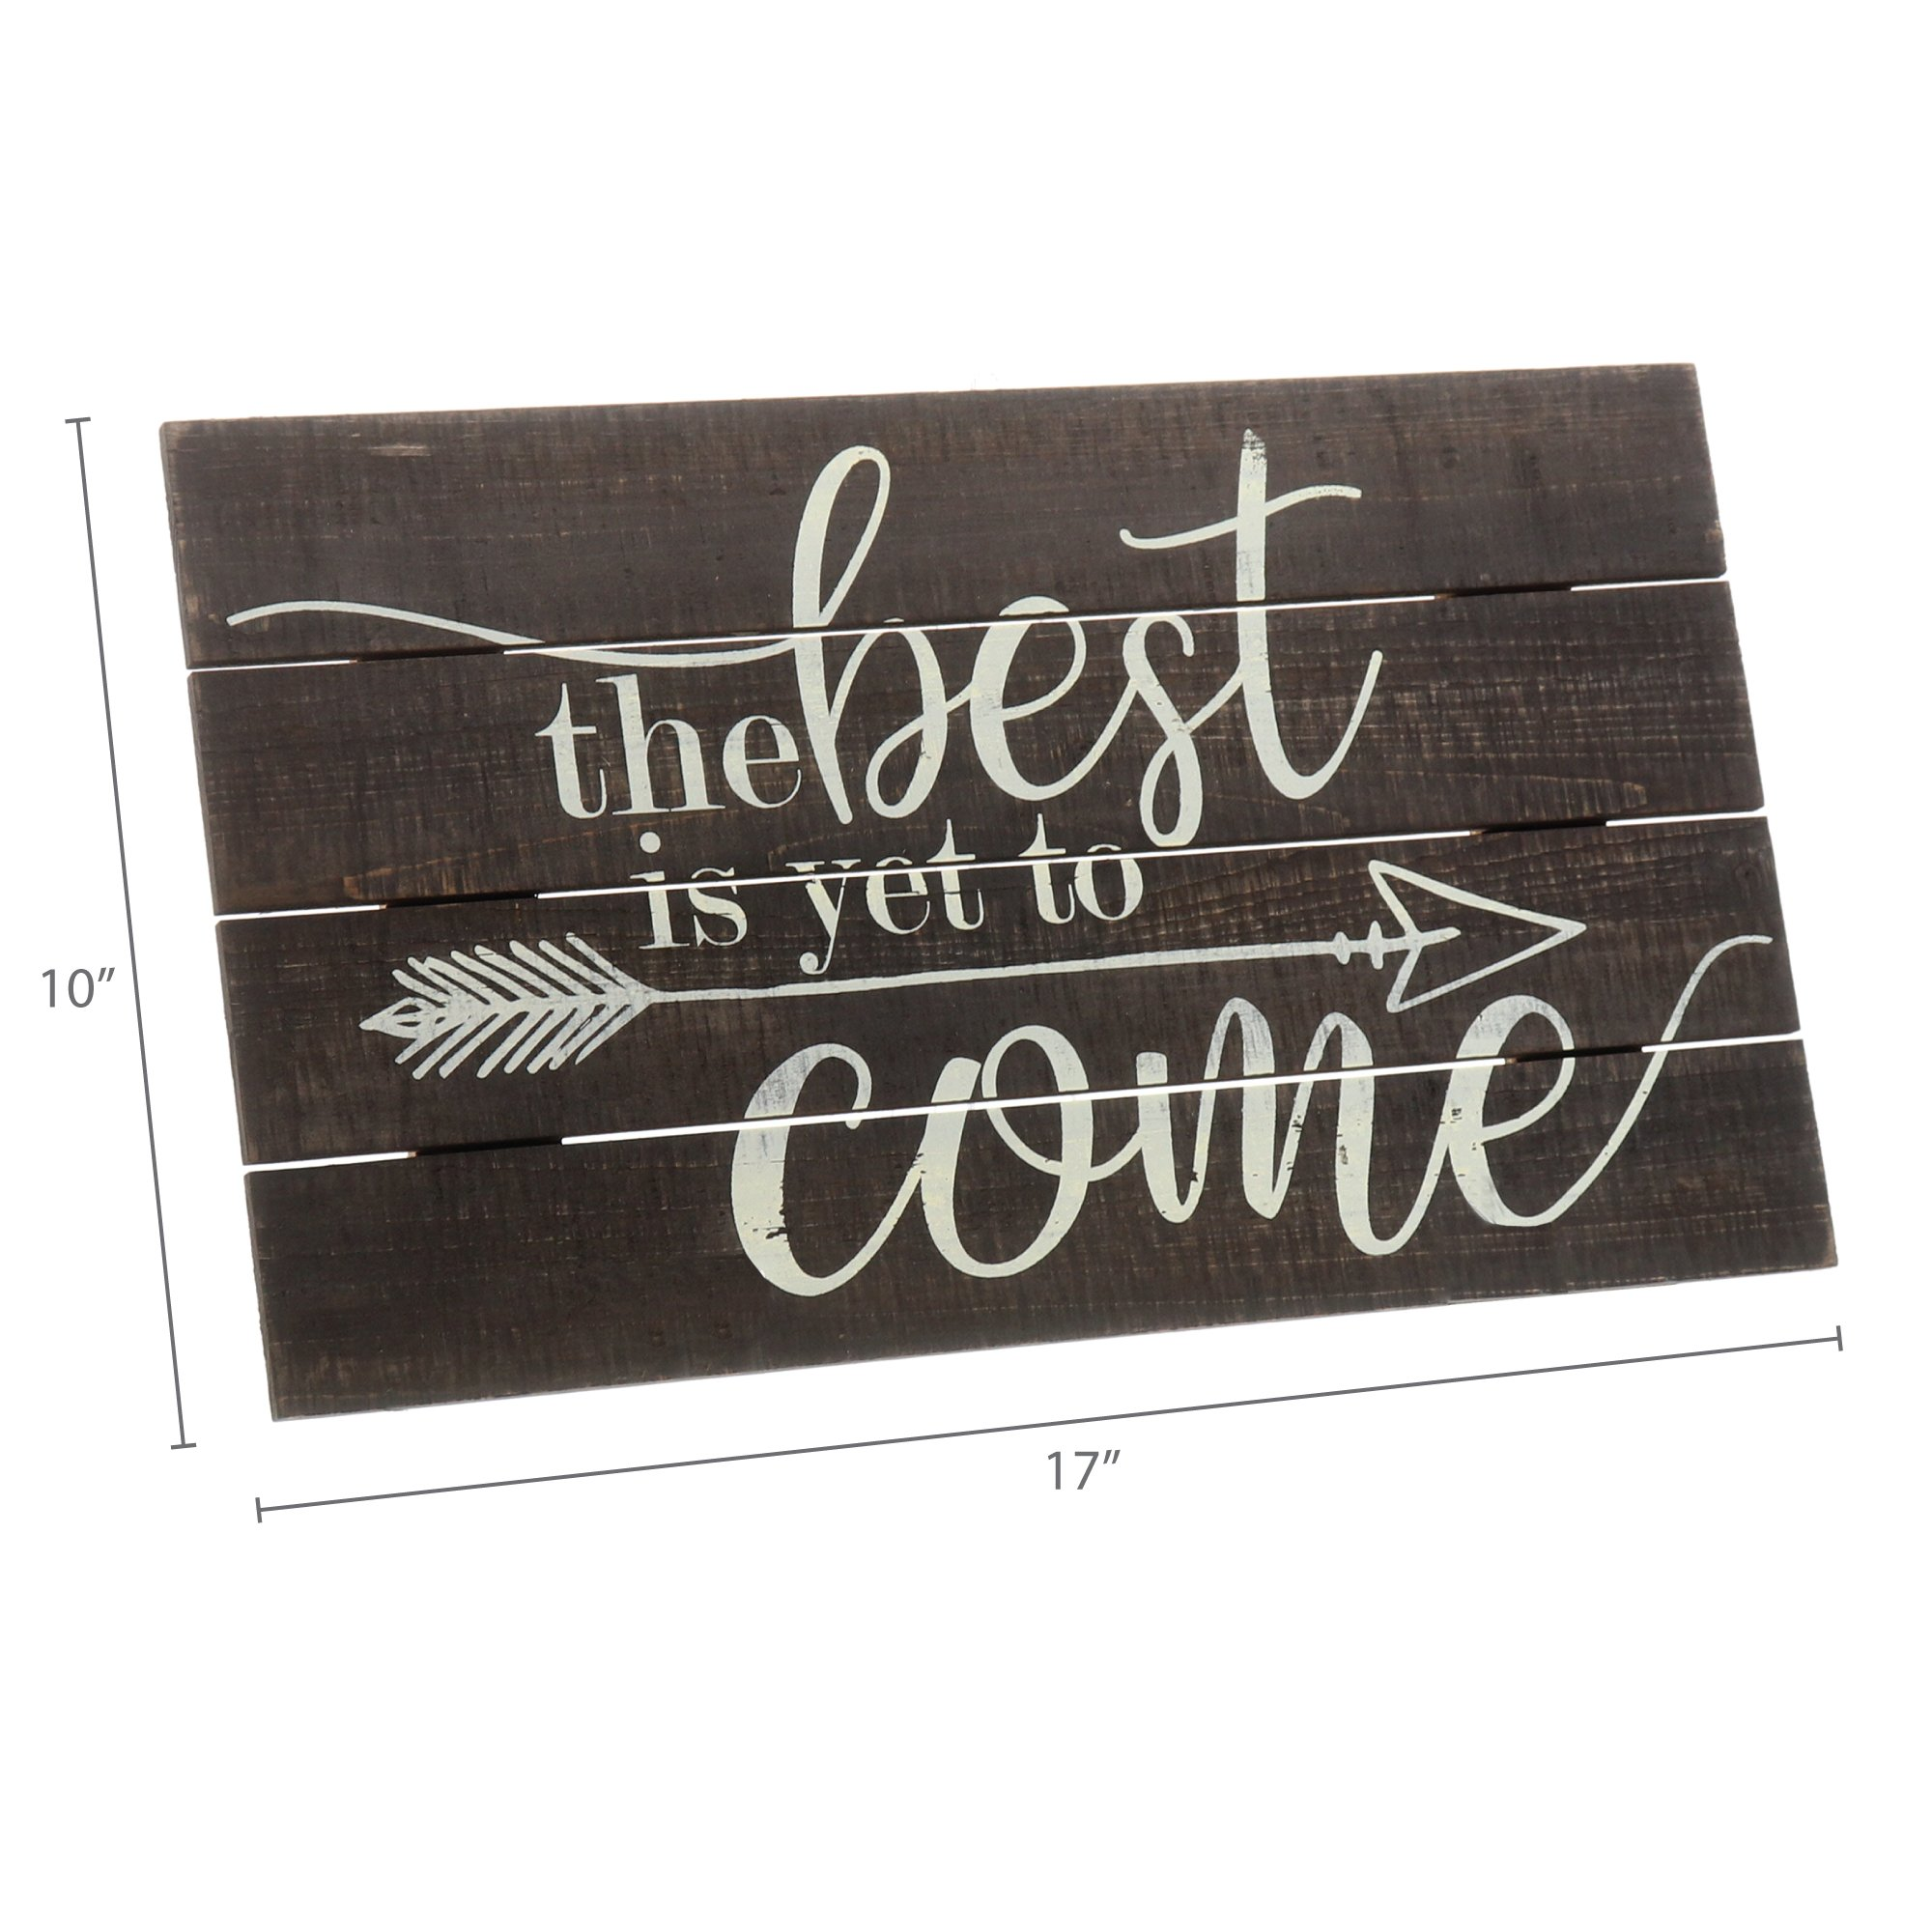 """Barnyard Designs The Best Is Yet To Come Rustic Wood Hanging Sign Decorative Wall Decor 17"""" x 10"""" by Barnyard Designs (Image #6)"""